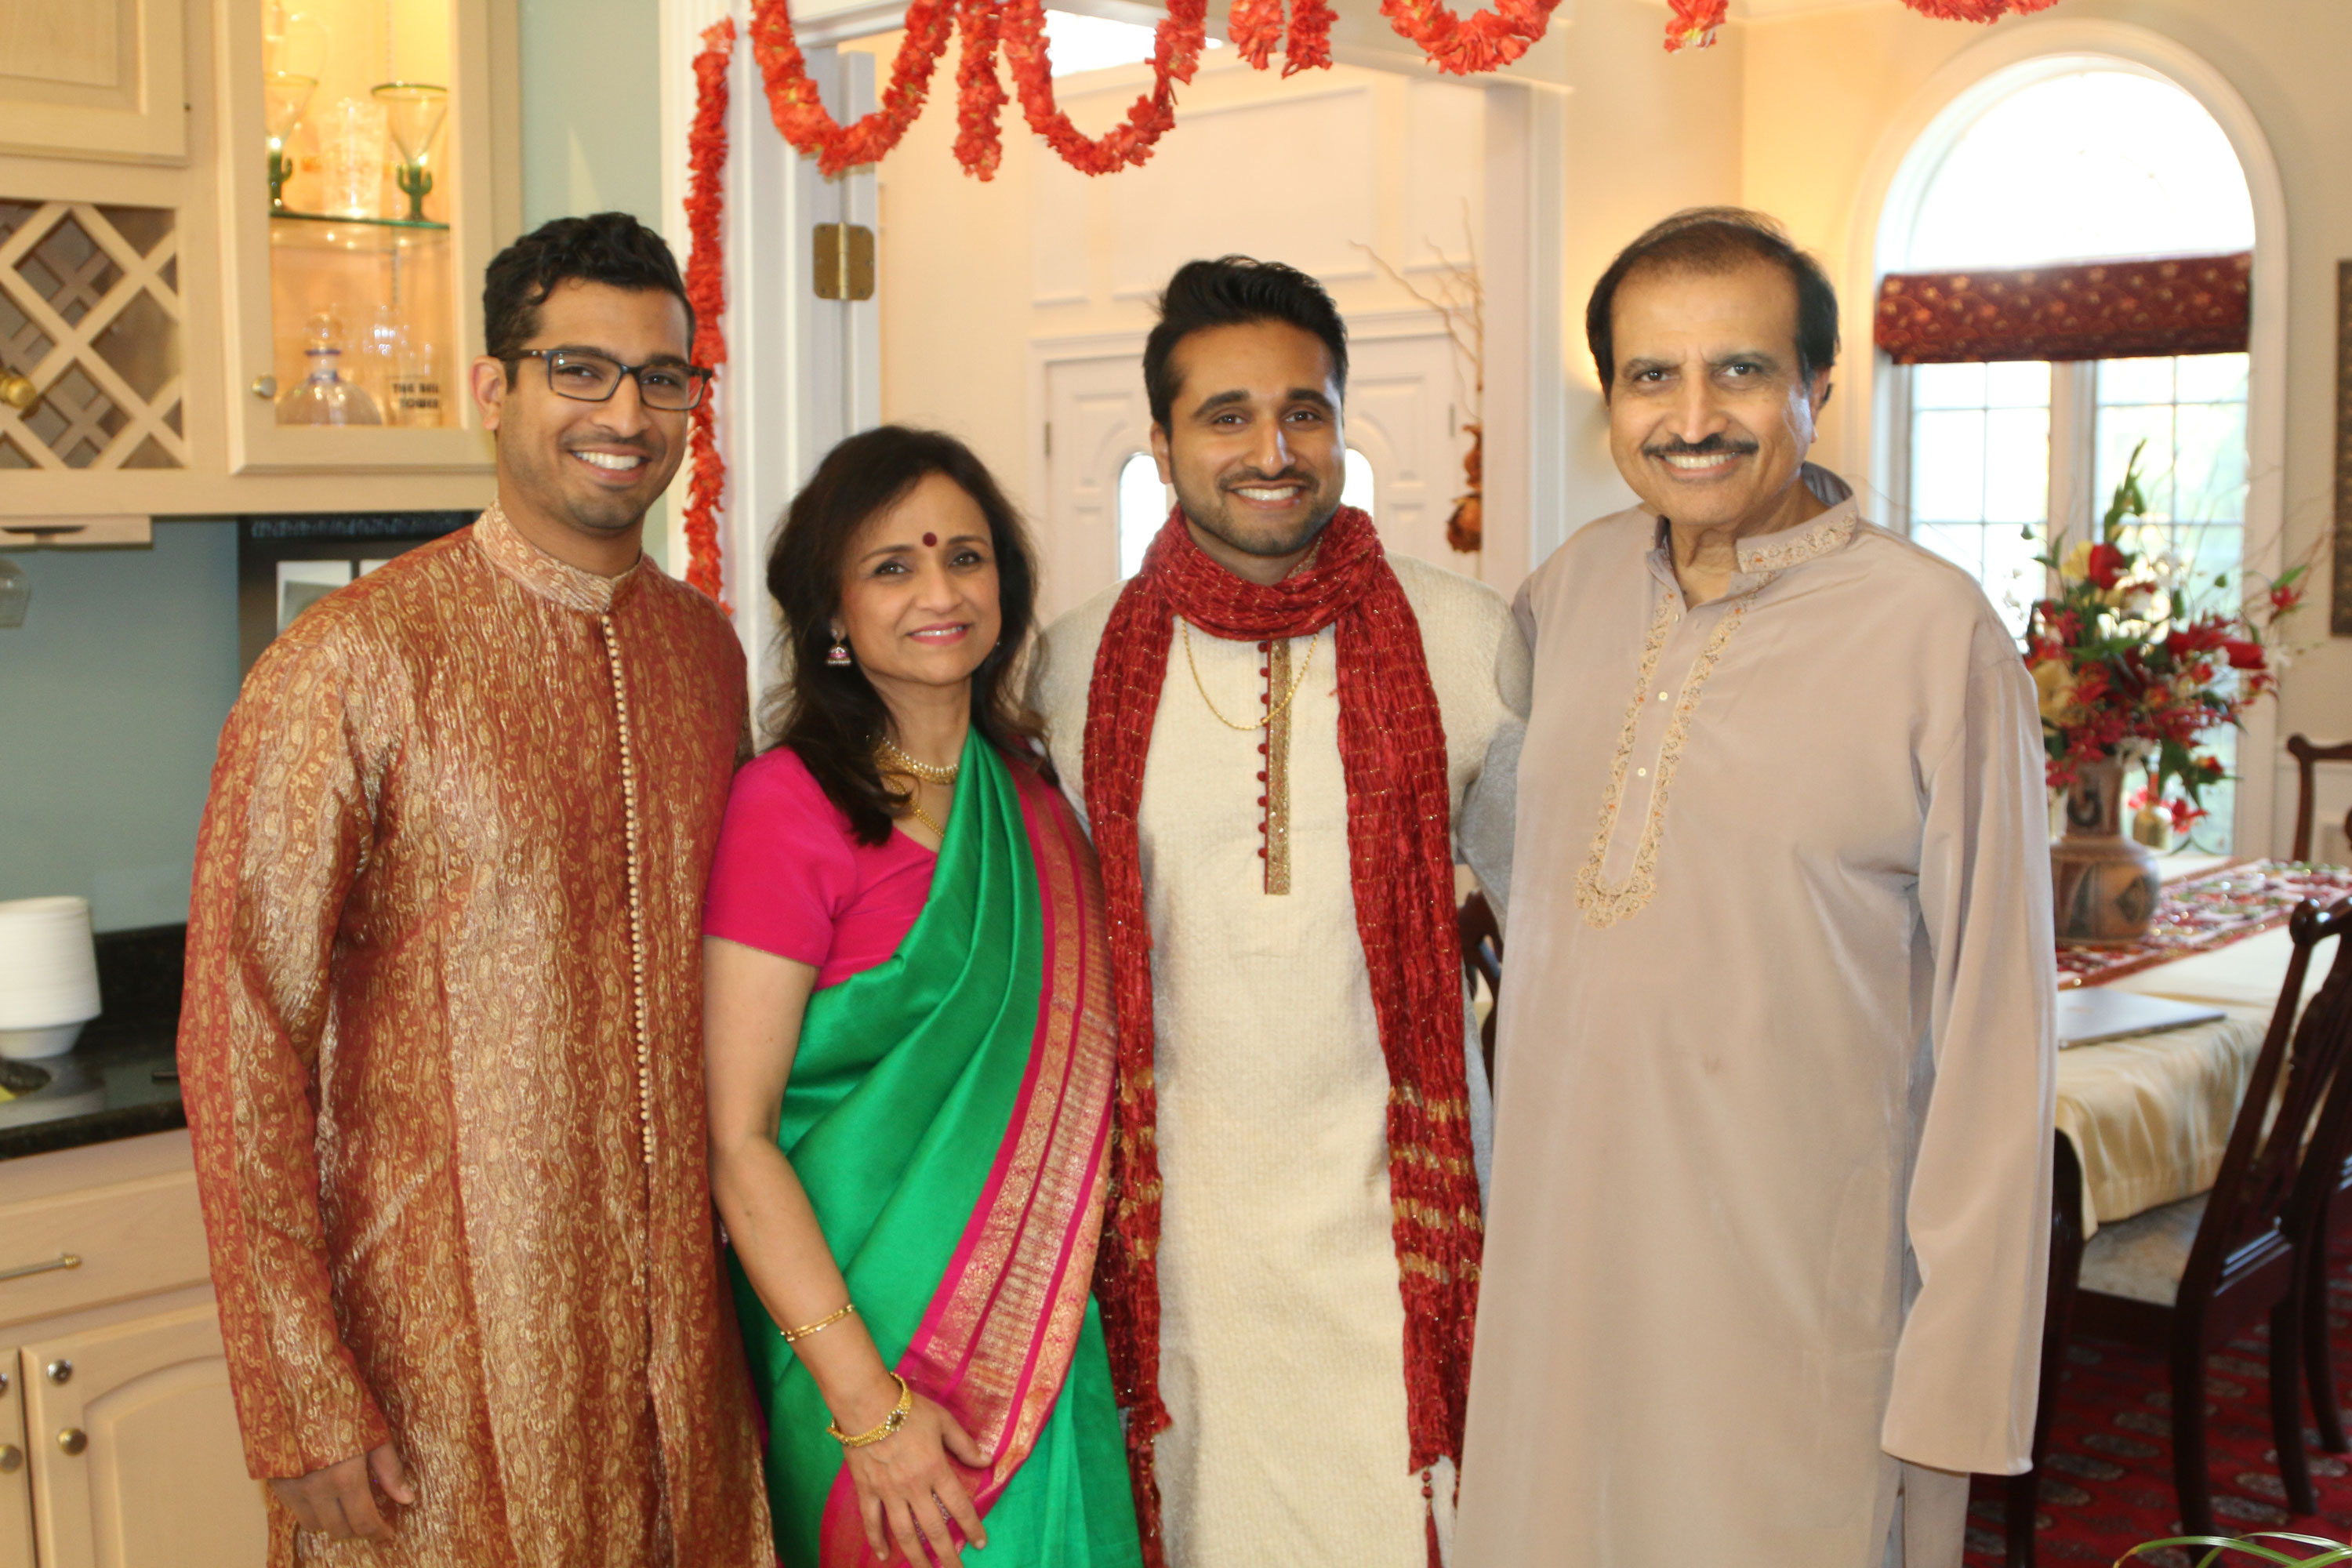 The Pati family a few days before father Mahesh's (far right) diagnosis. (Courtesy of Pati family)